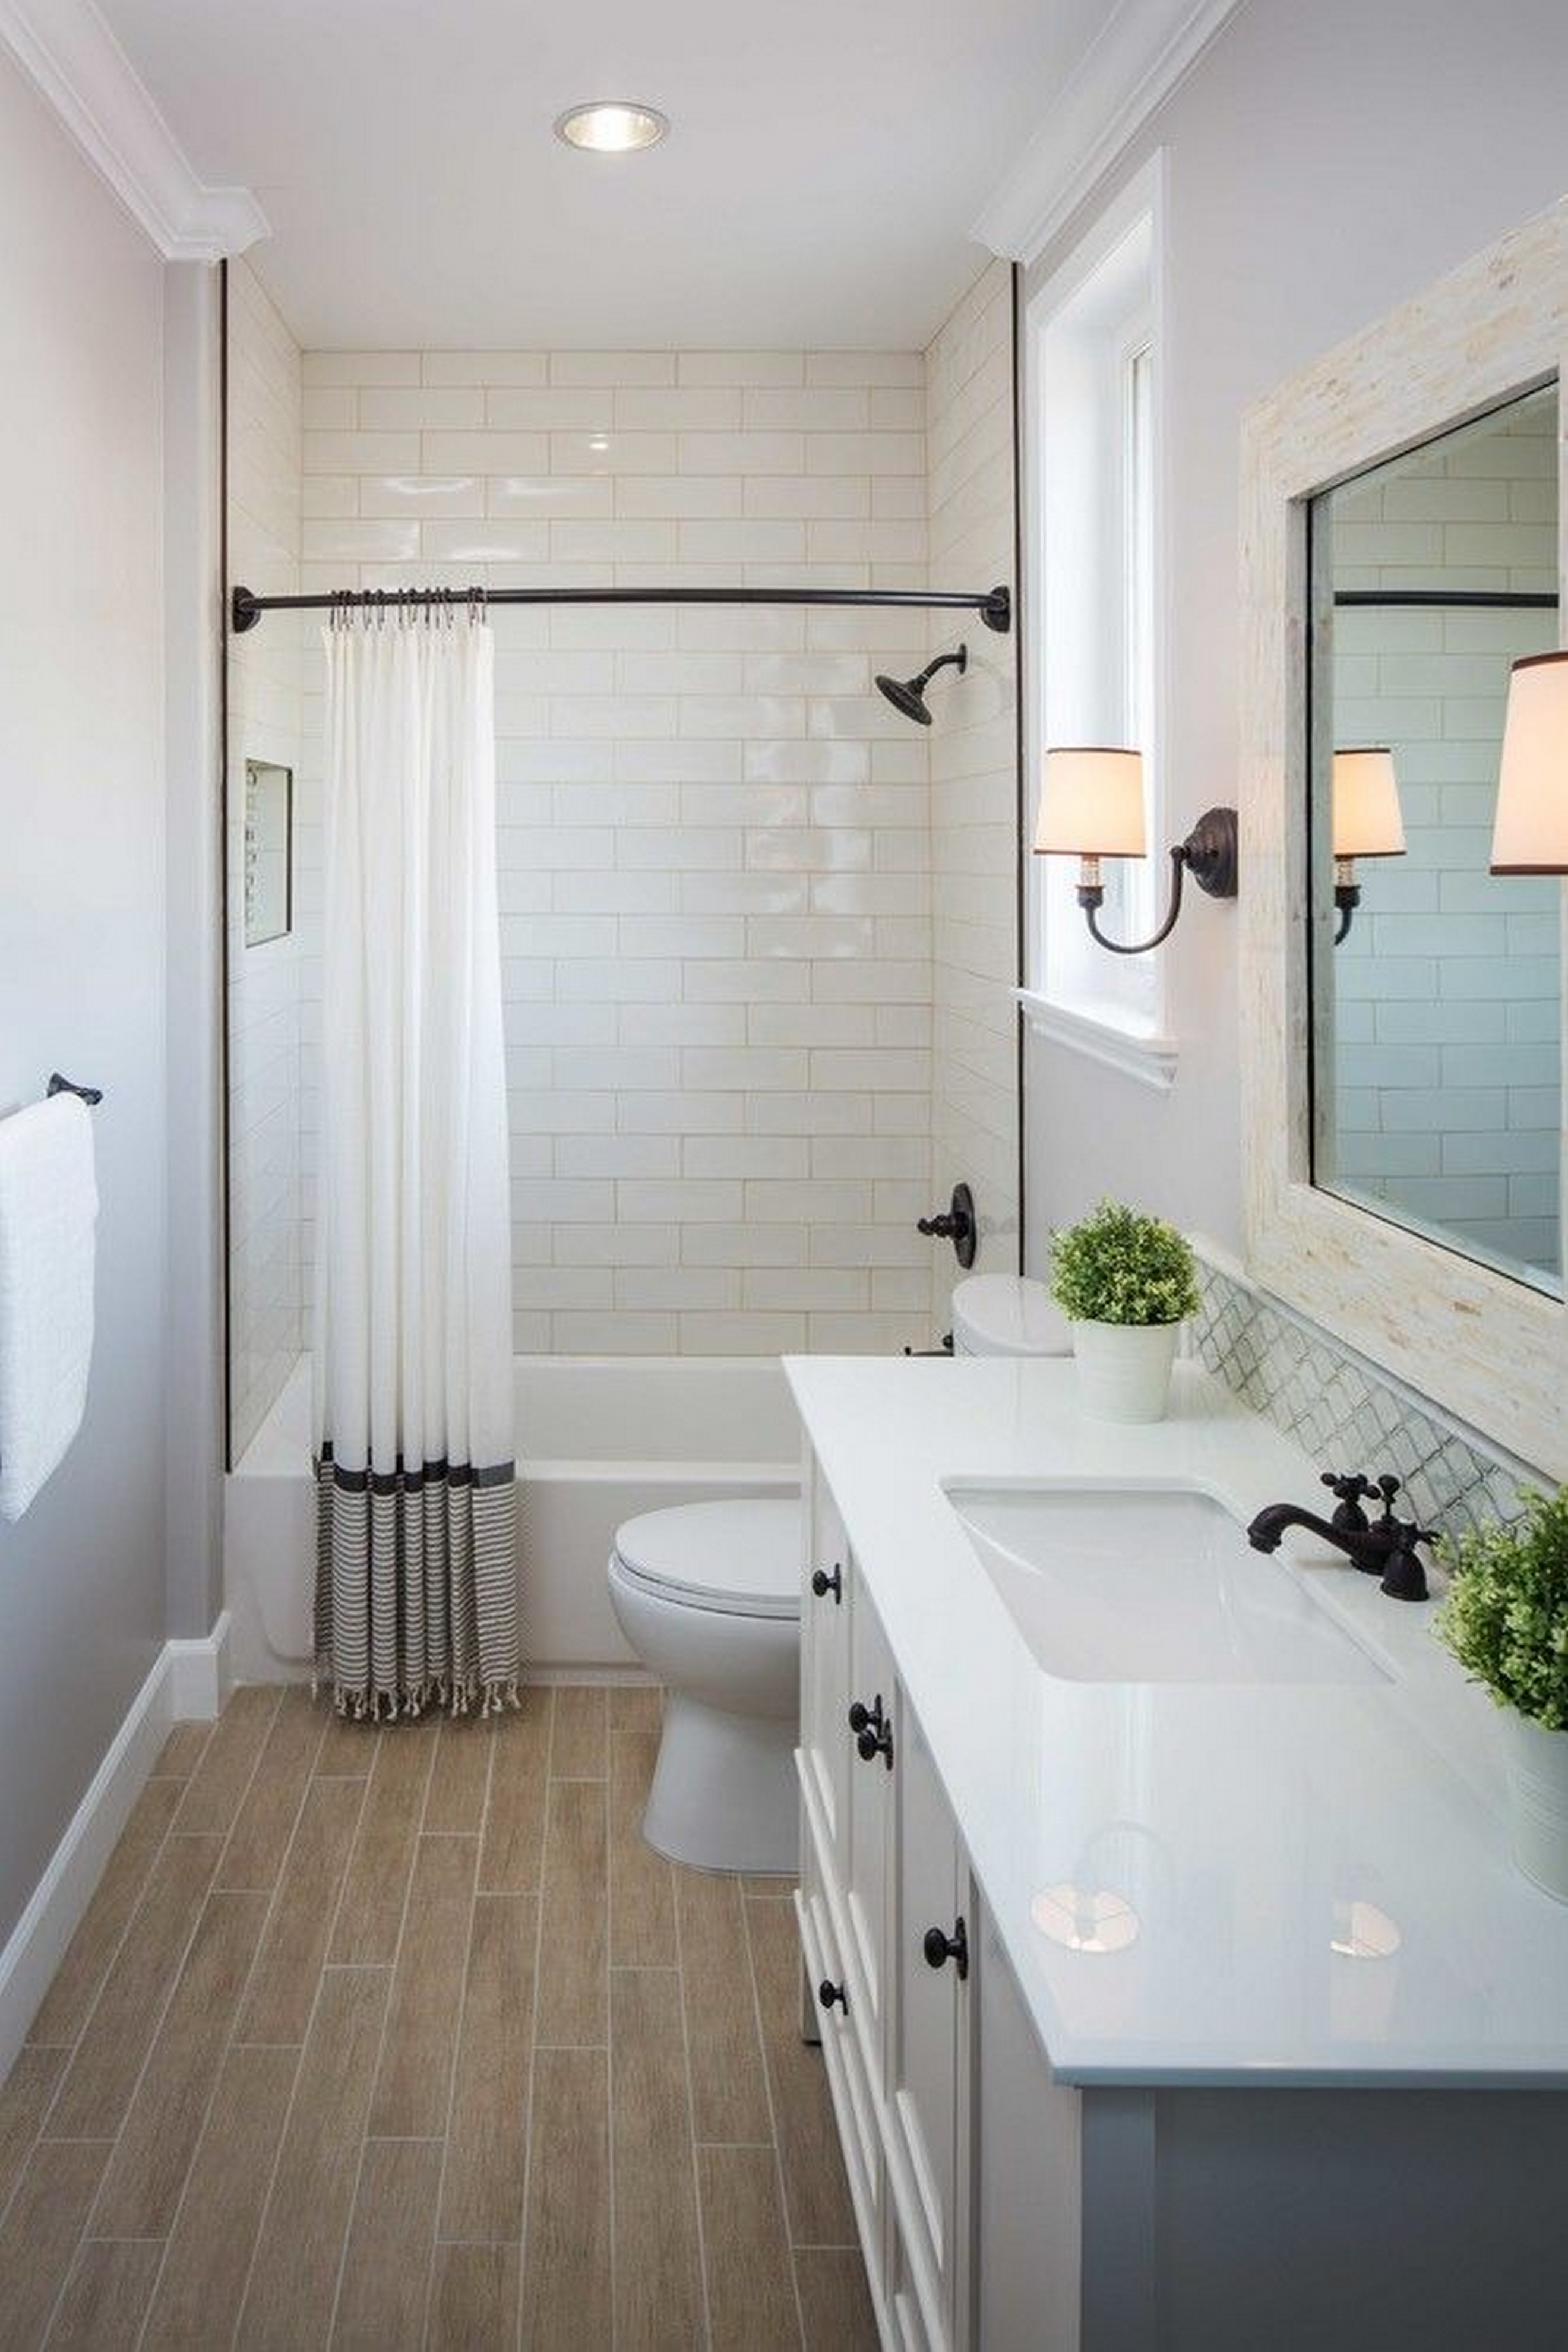 Permalink to Kohler Vanities For Small Bathrooms